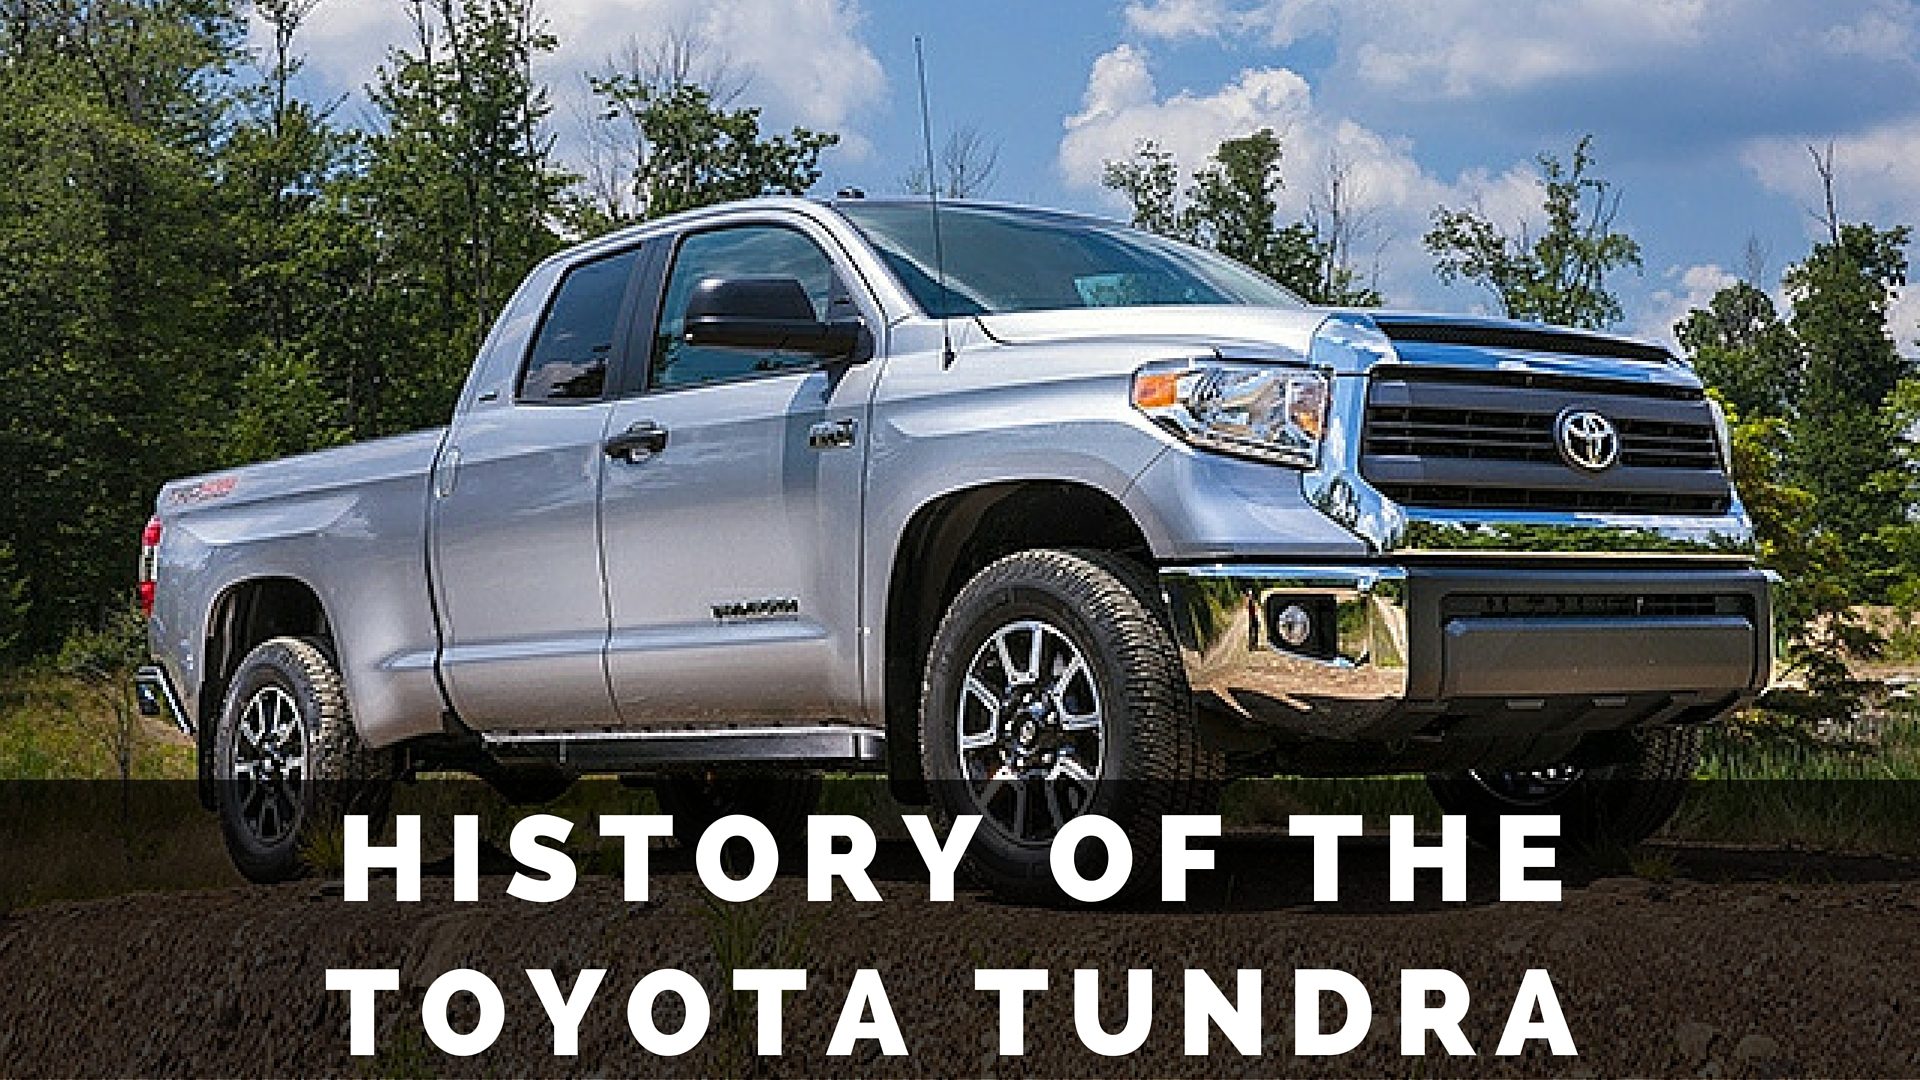 history of the toyota tundra vanderstyne toyota. Black Bedroom Furniture Sets. Home Design Ideas